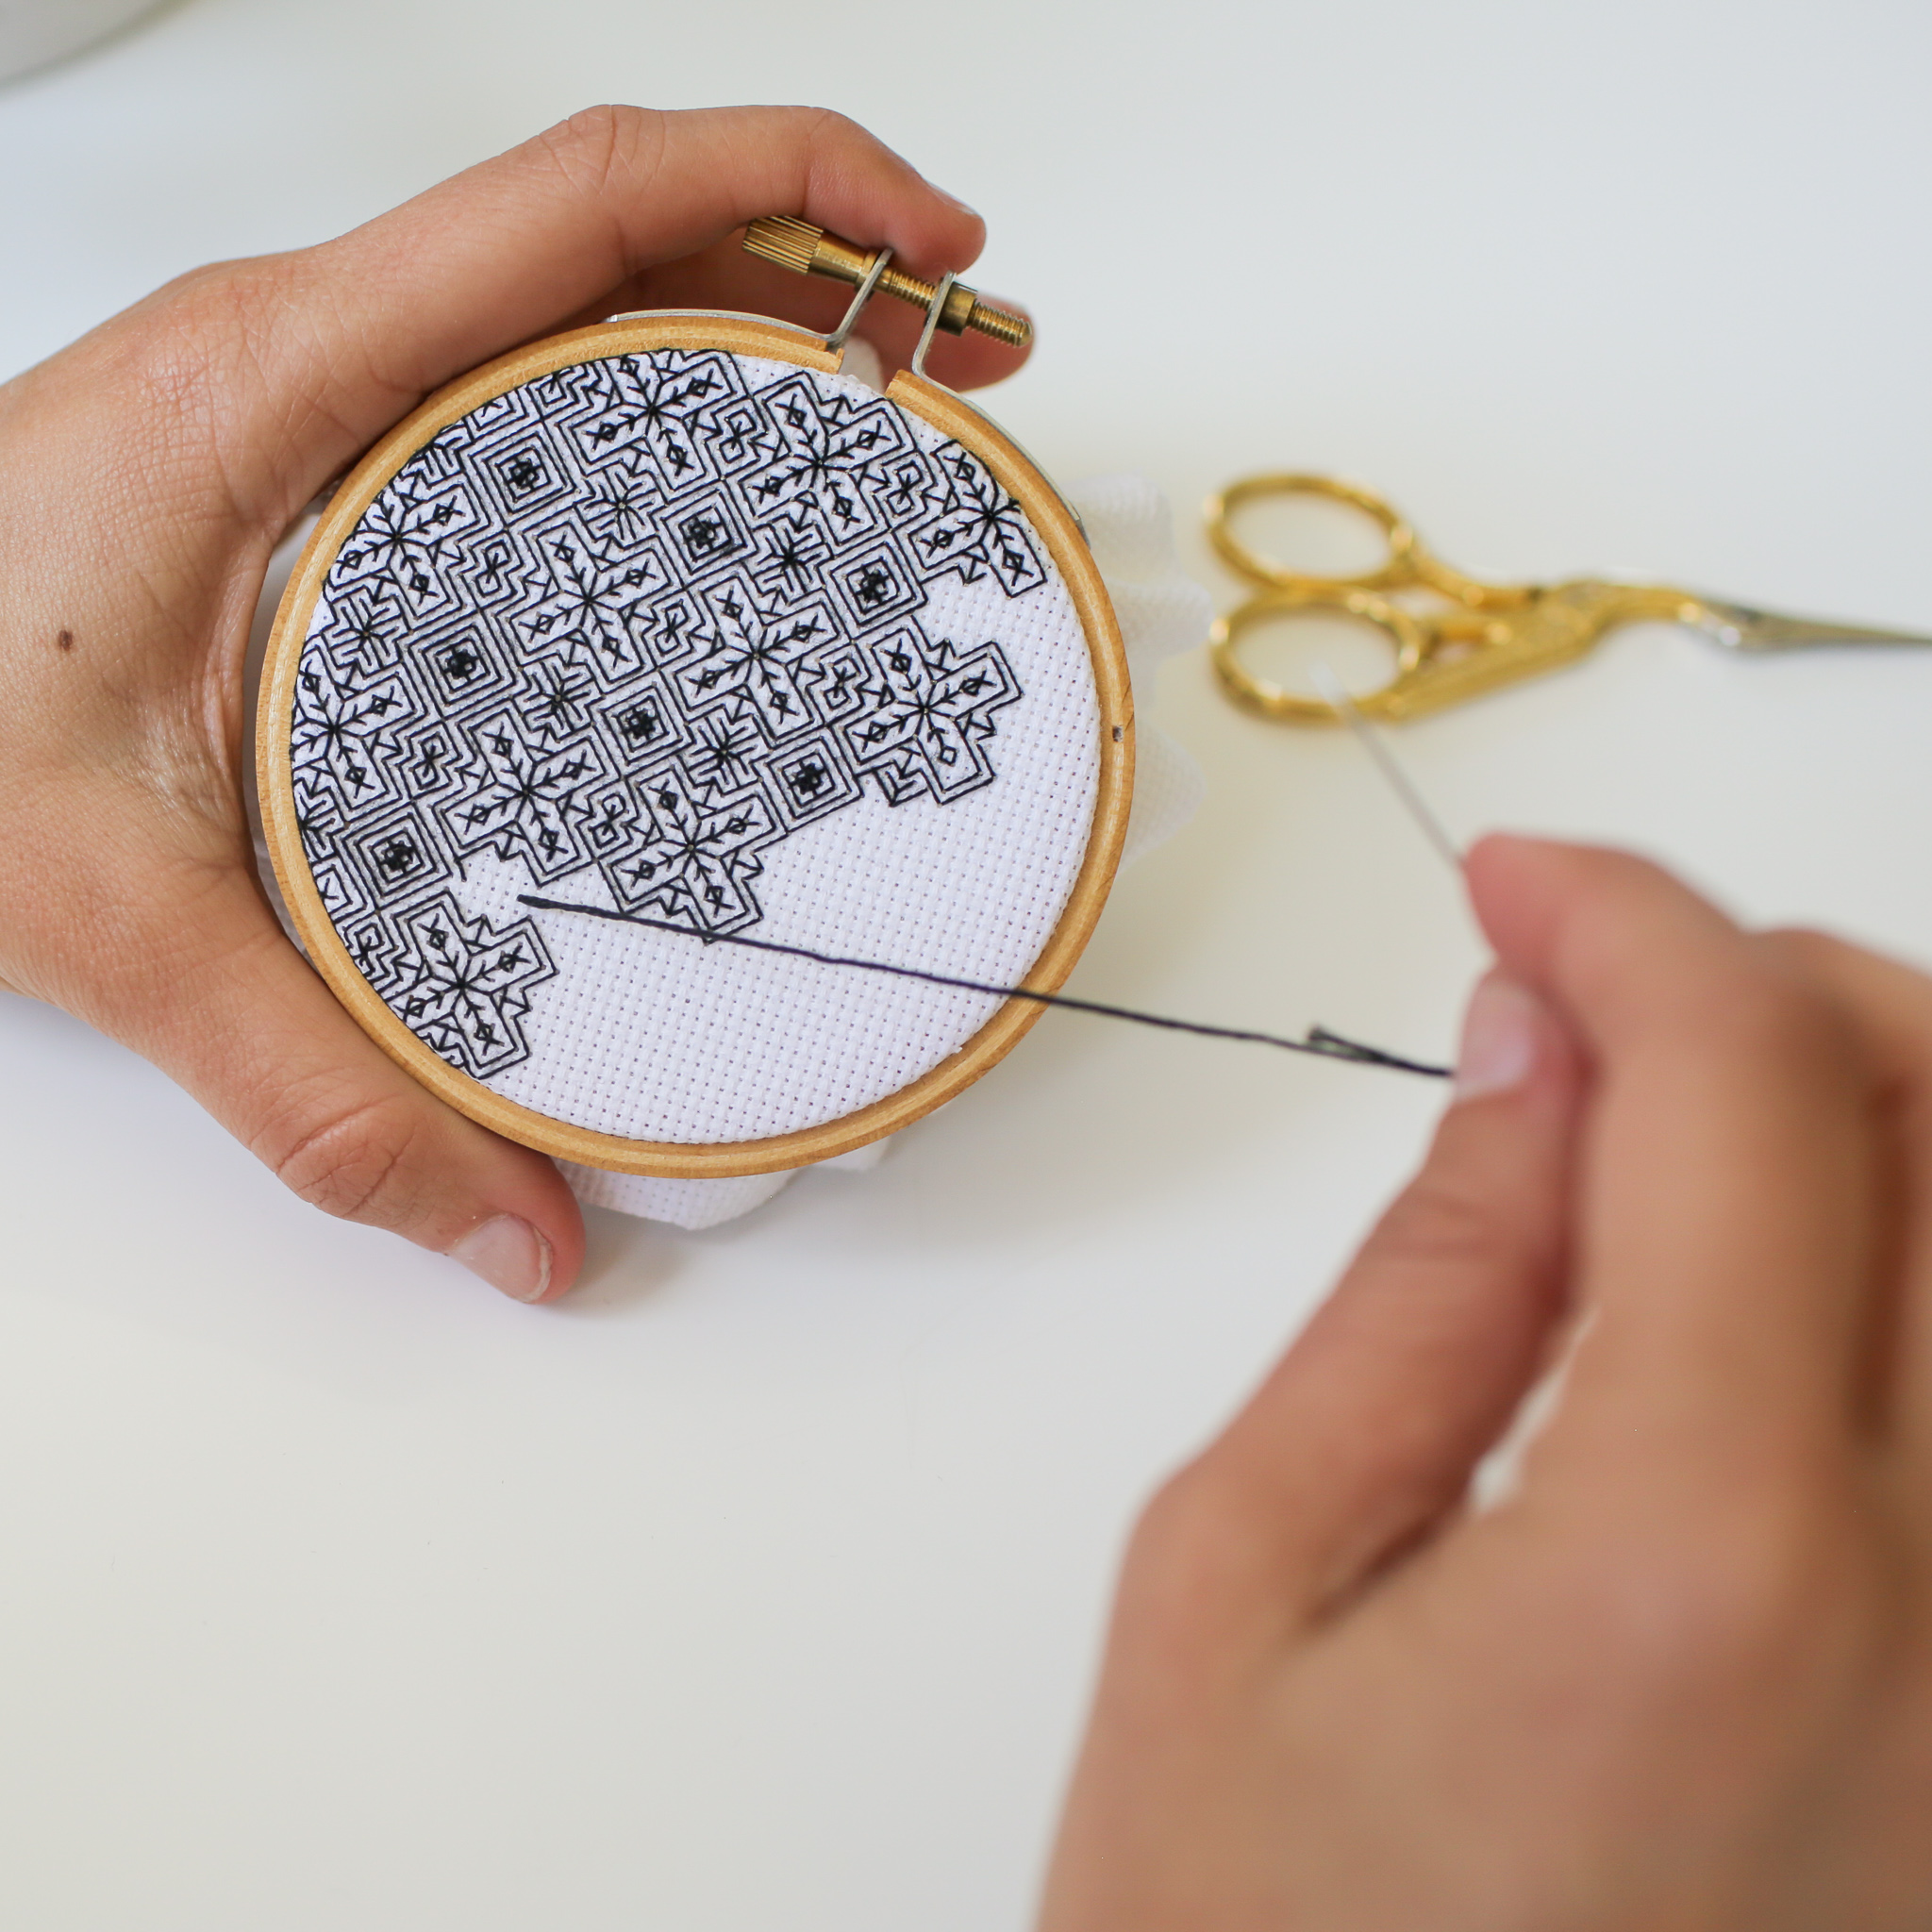 embroidery 4.jpg